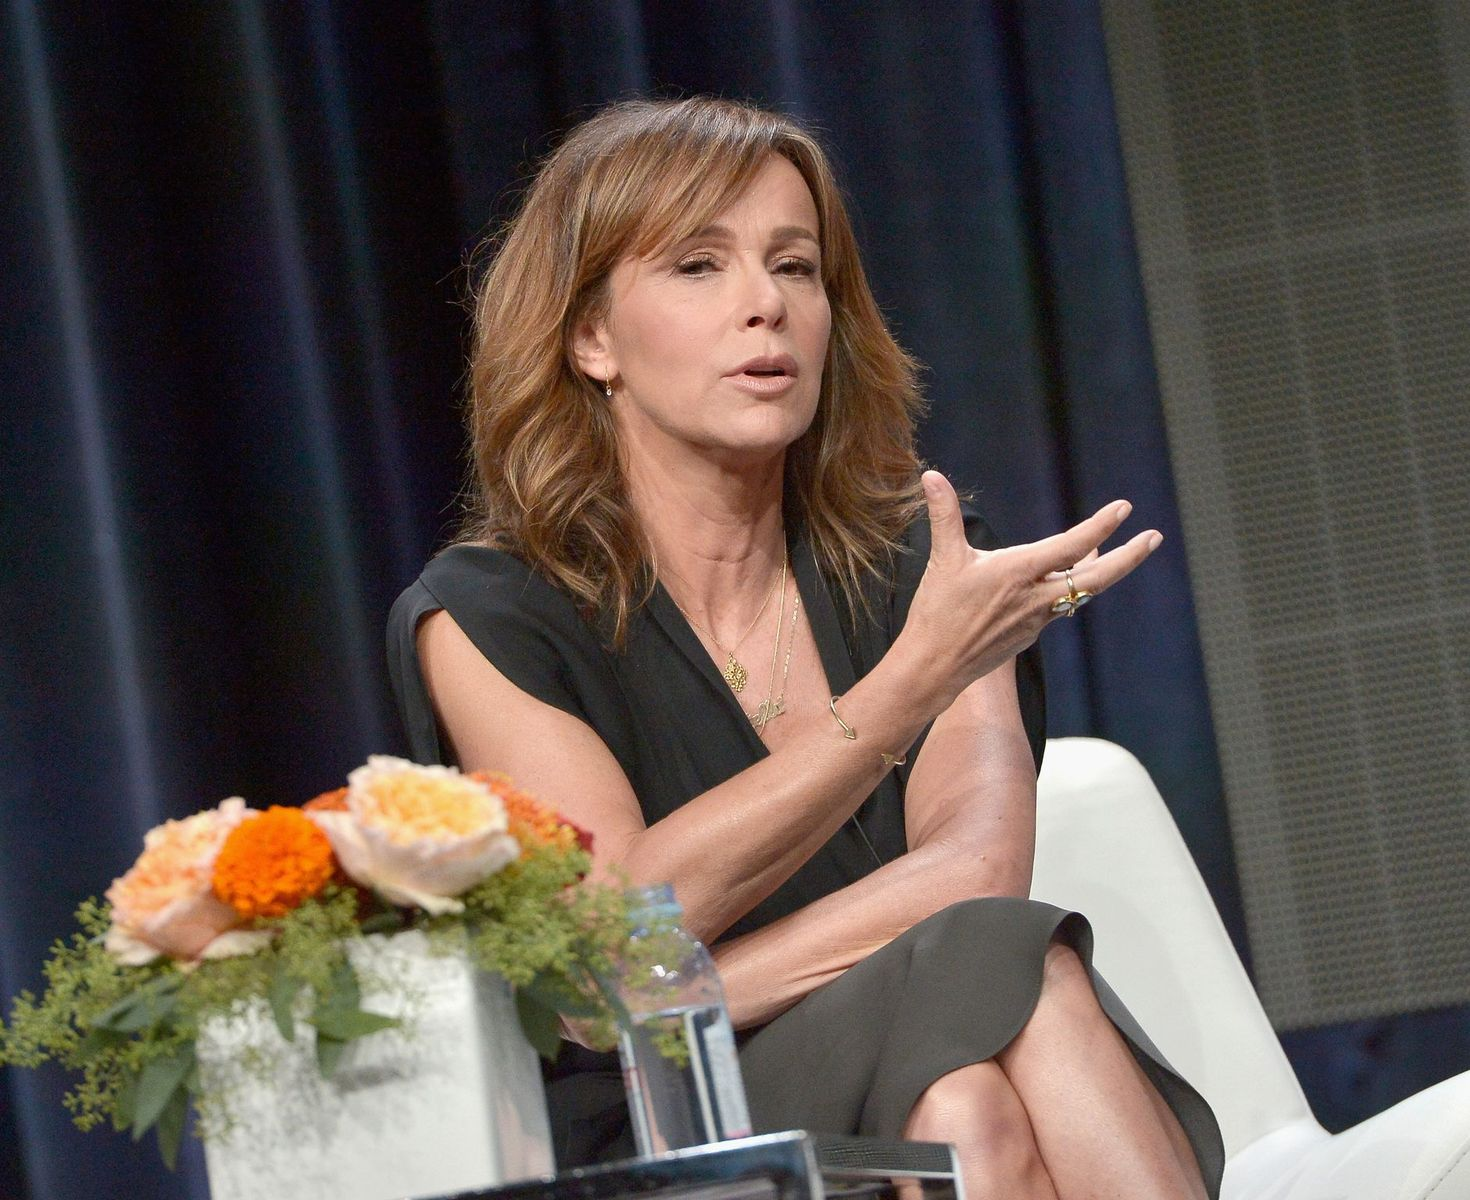 Jennifer Grey speaks onstage during the 'Red Oaks' panel discussion at the Amazon Studios portion of the 2015 Summer TCA Tour on August 3, 2015 in Beverly Hills, California. (Photo by Charley Gallay/Getty Images for Amazon Studios)